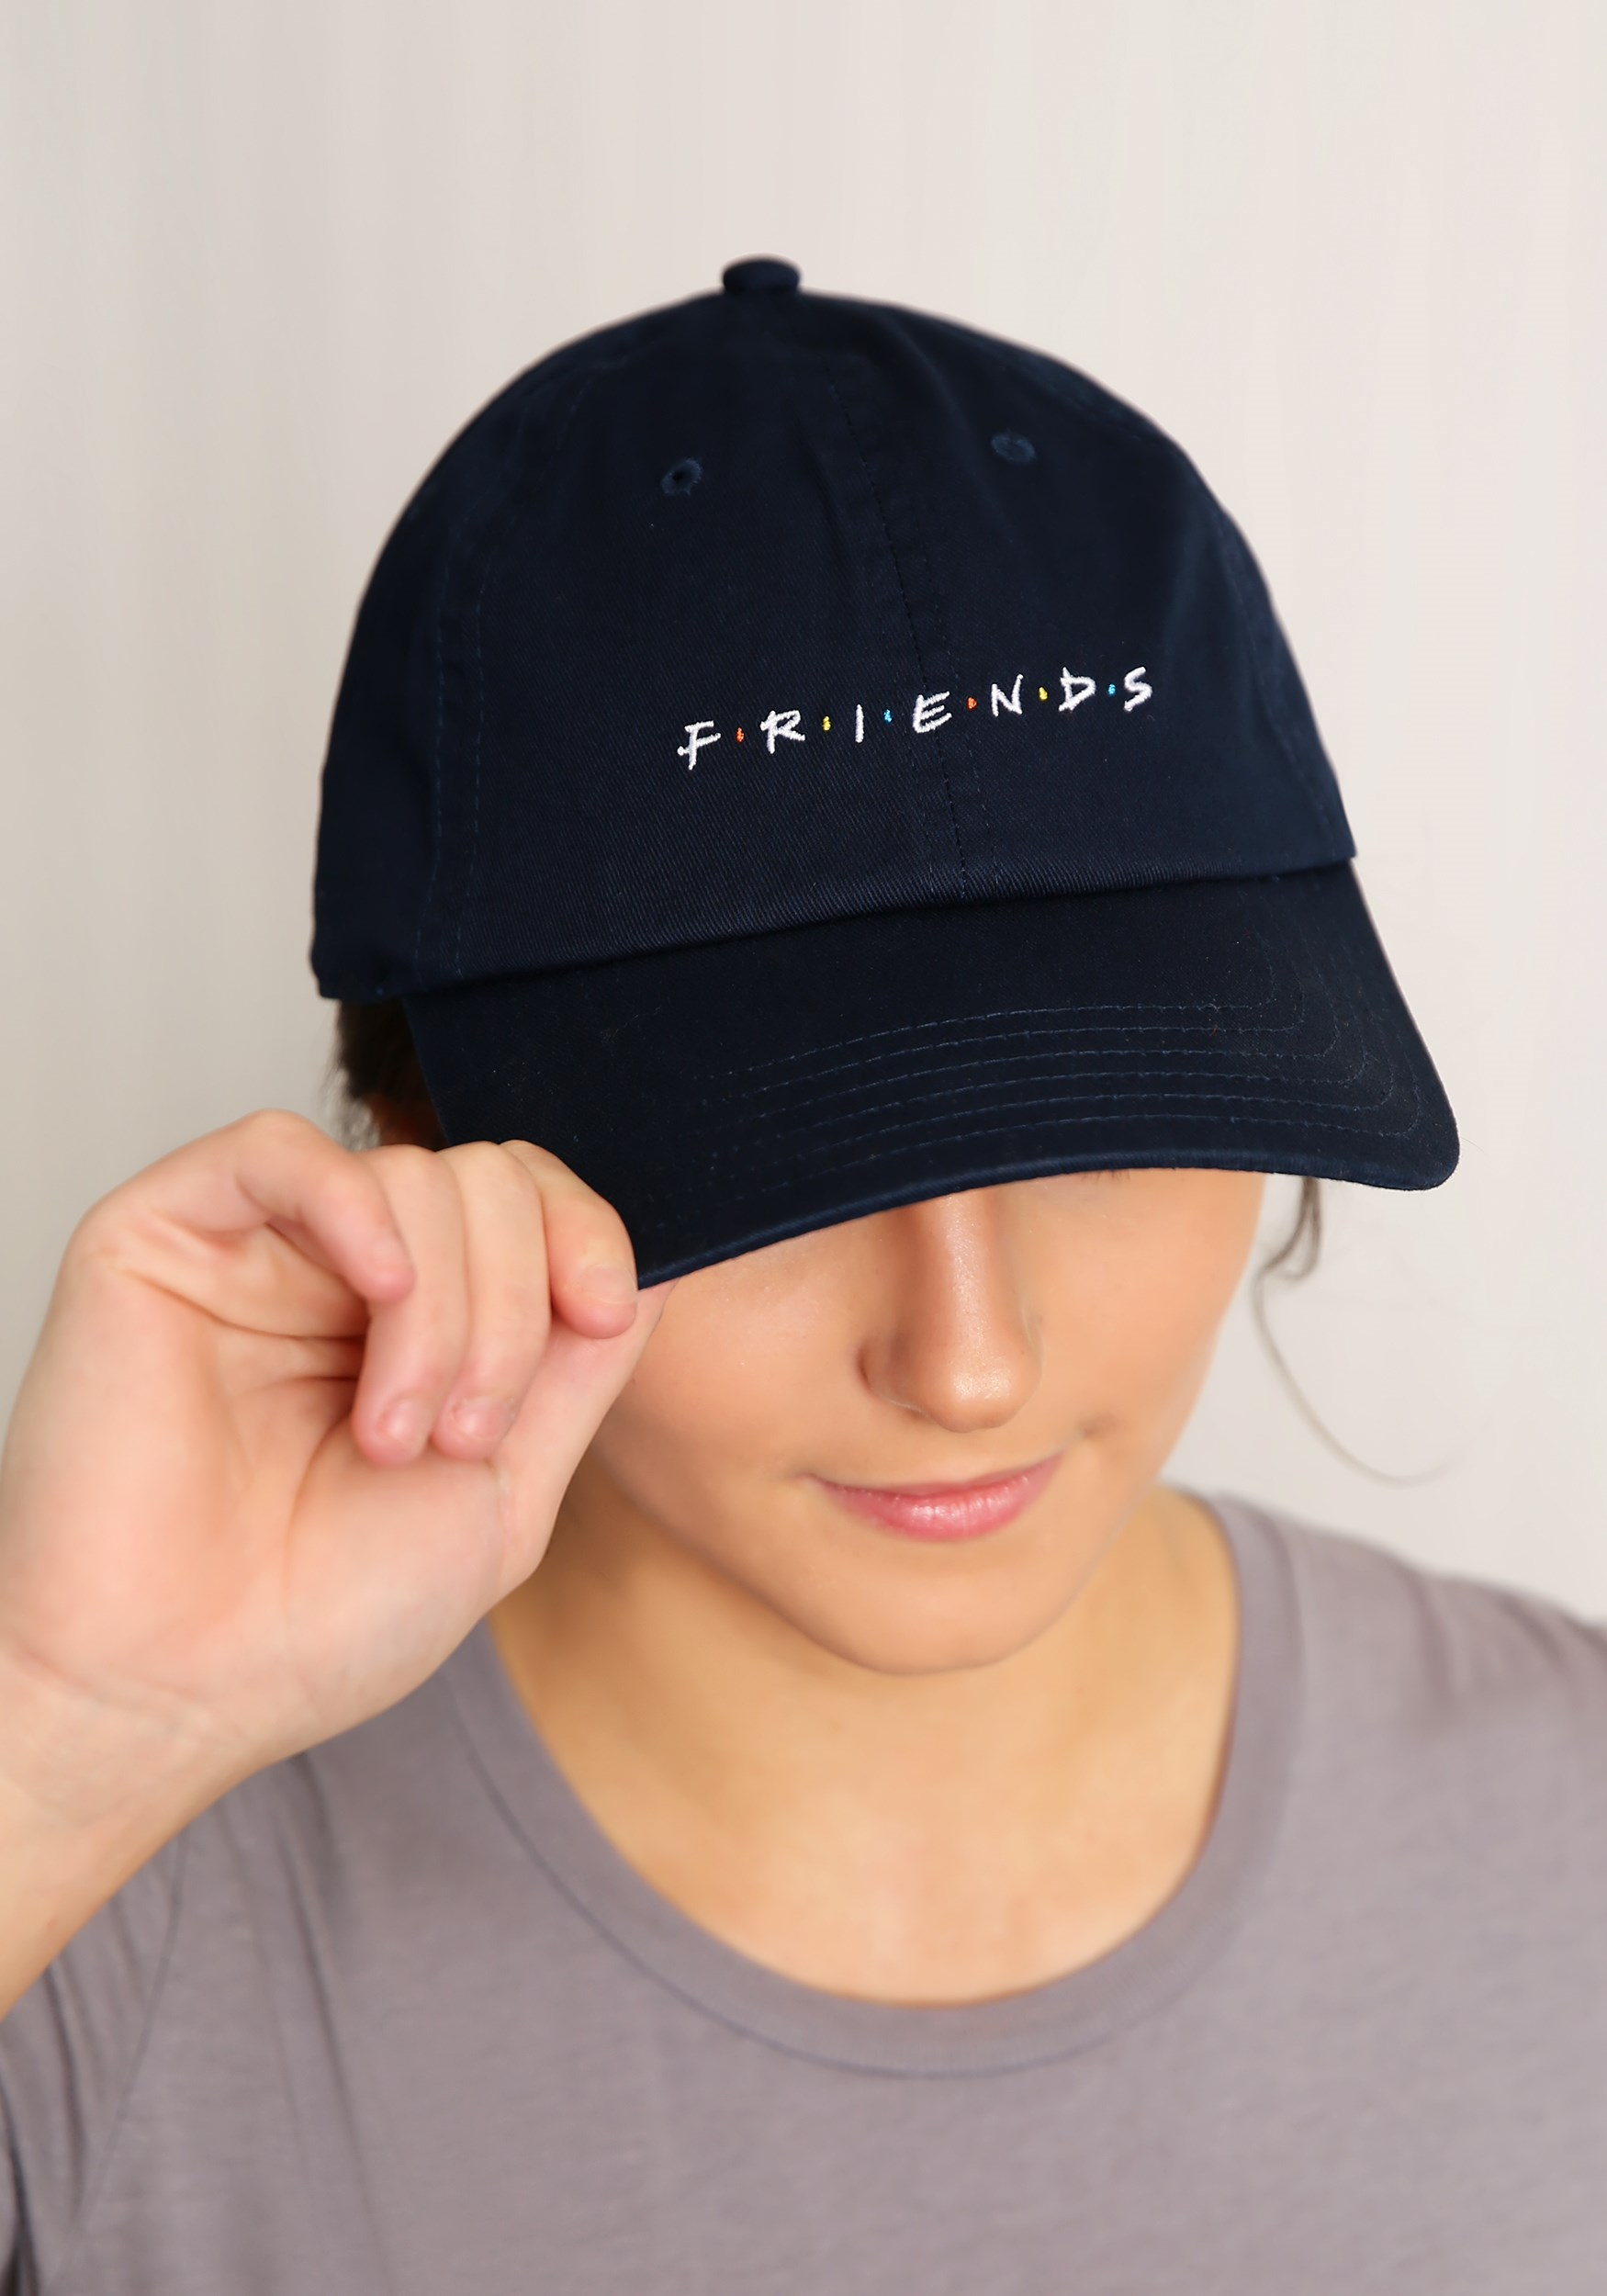 9f8118bb7 Friends Dad Hat